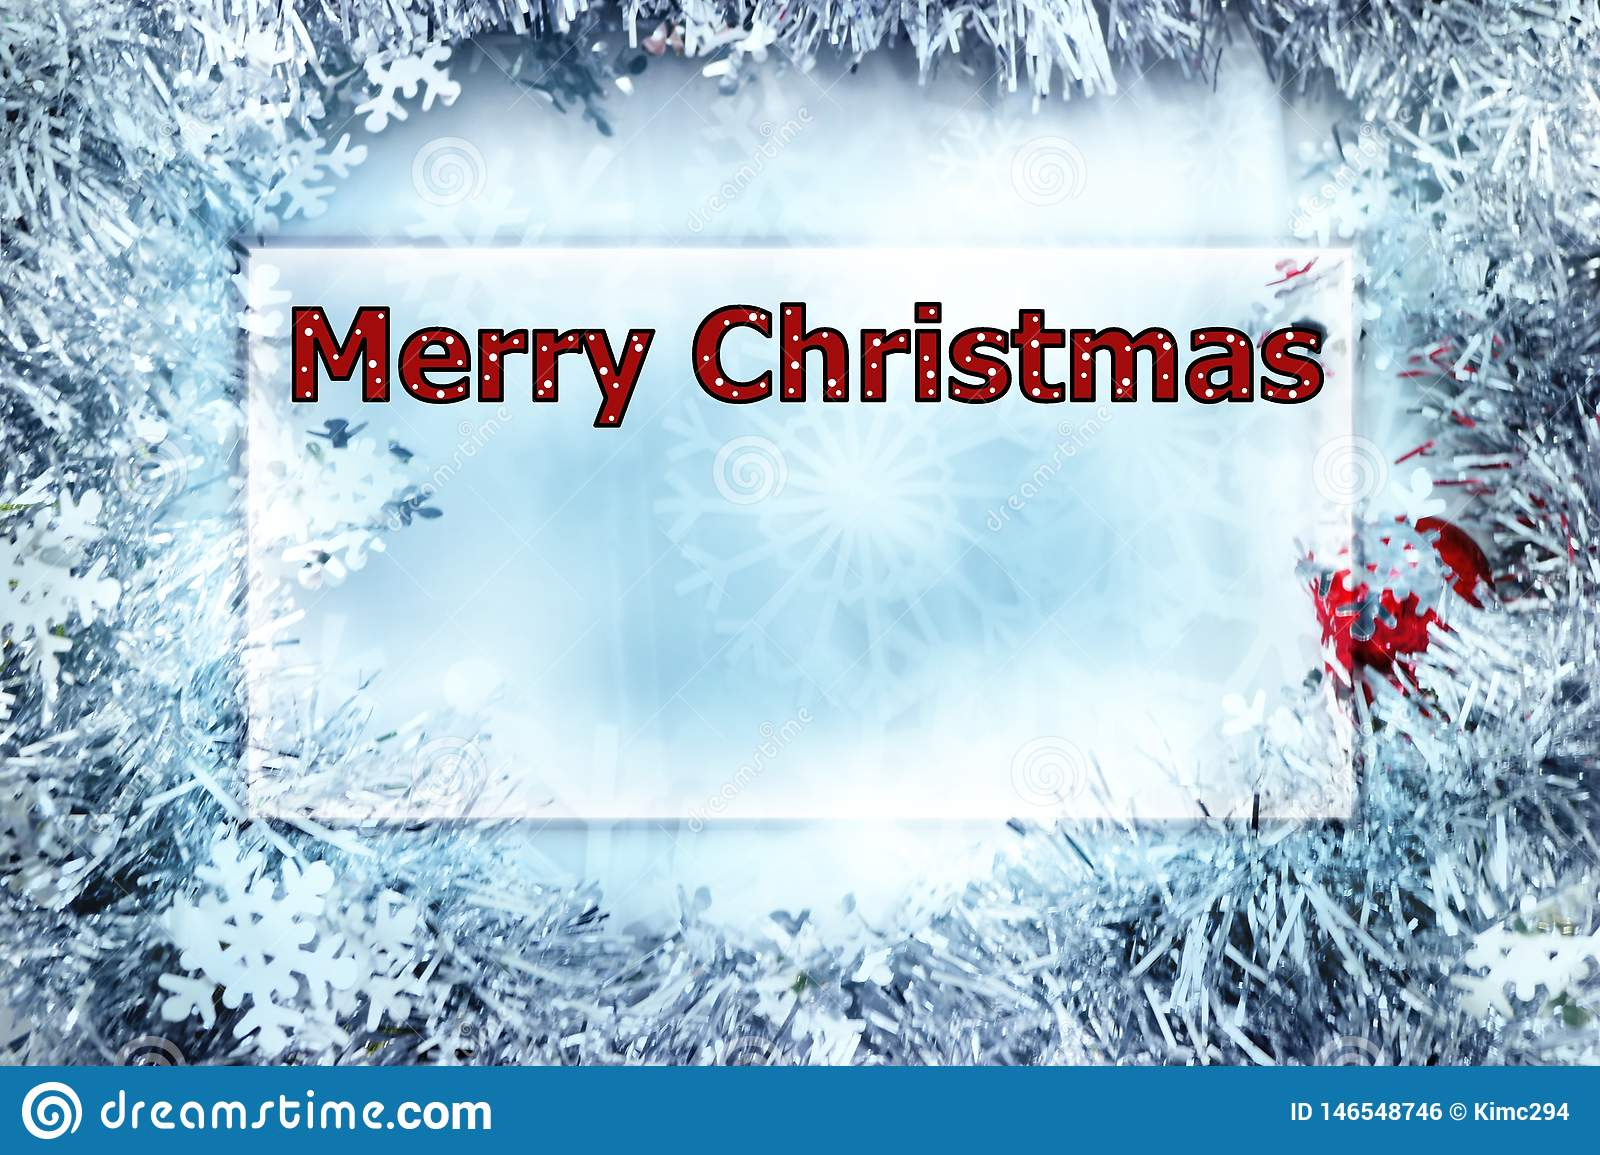 Christmas greeting card with the words Merry Christmas in polka dot letters, red and white.